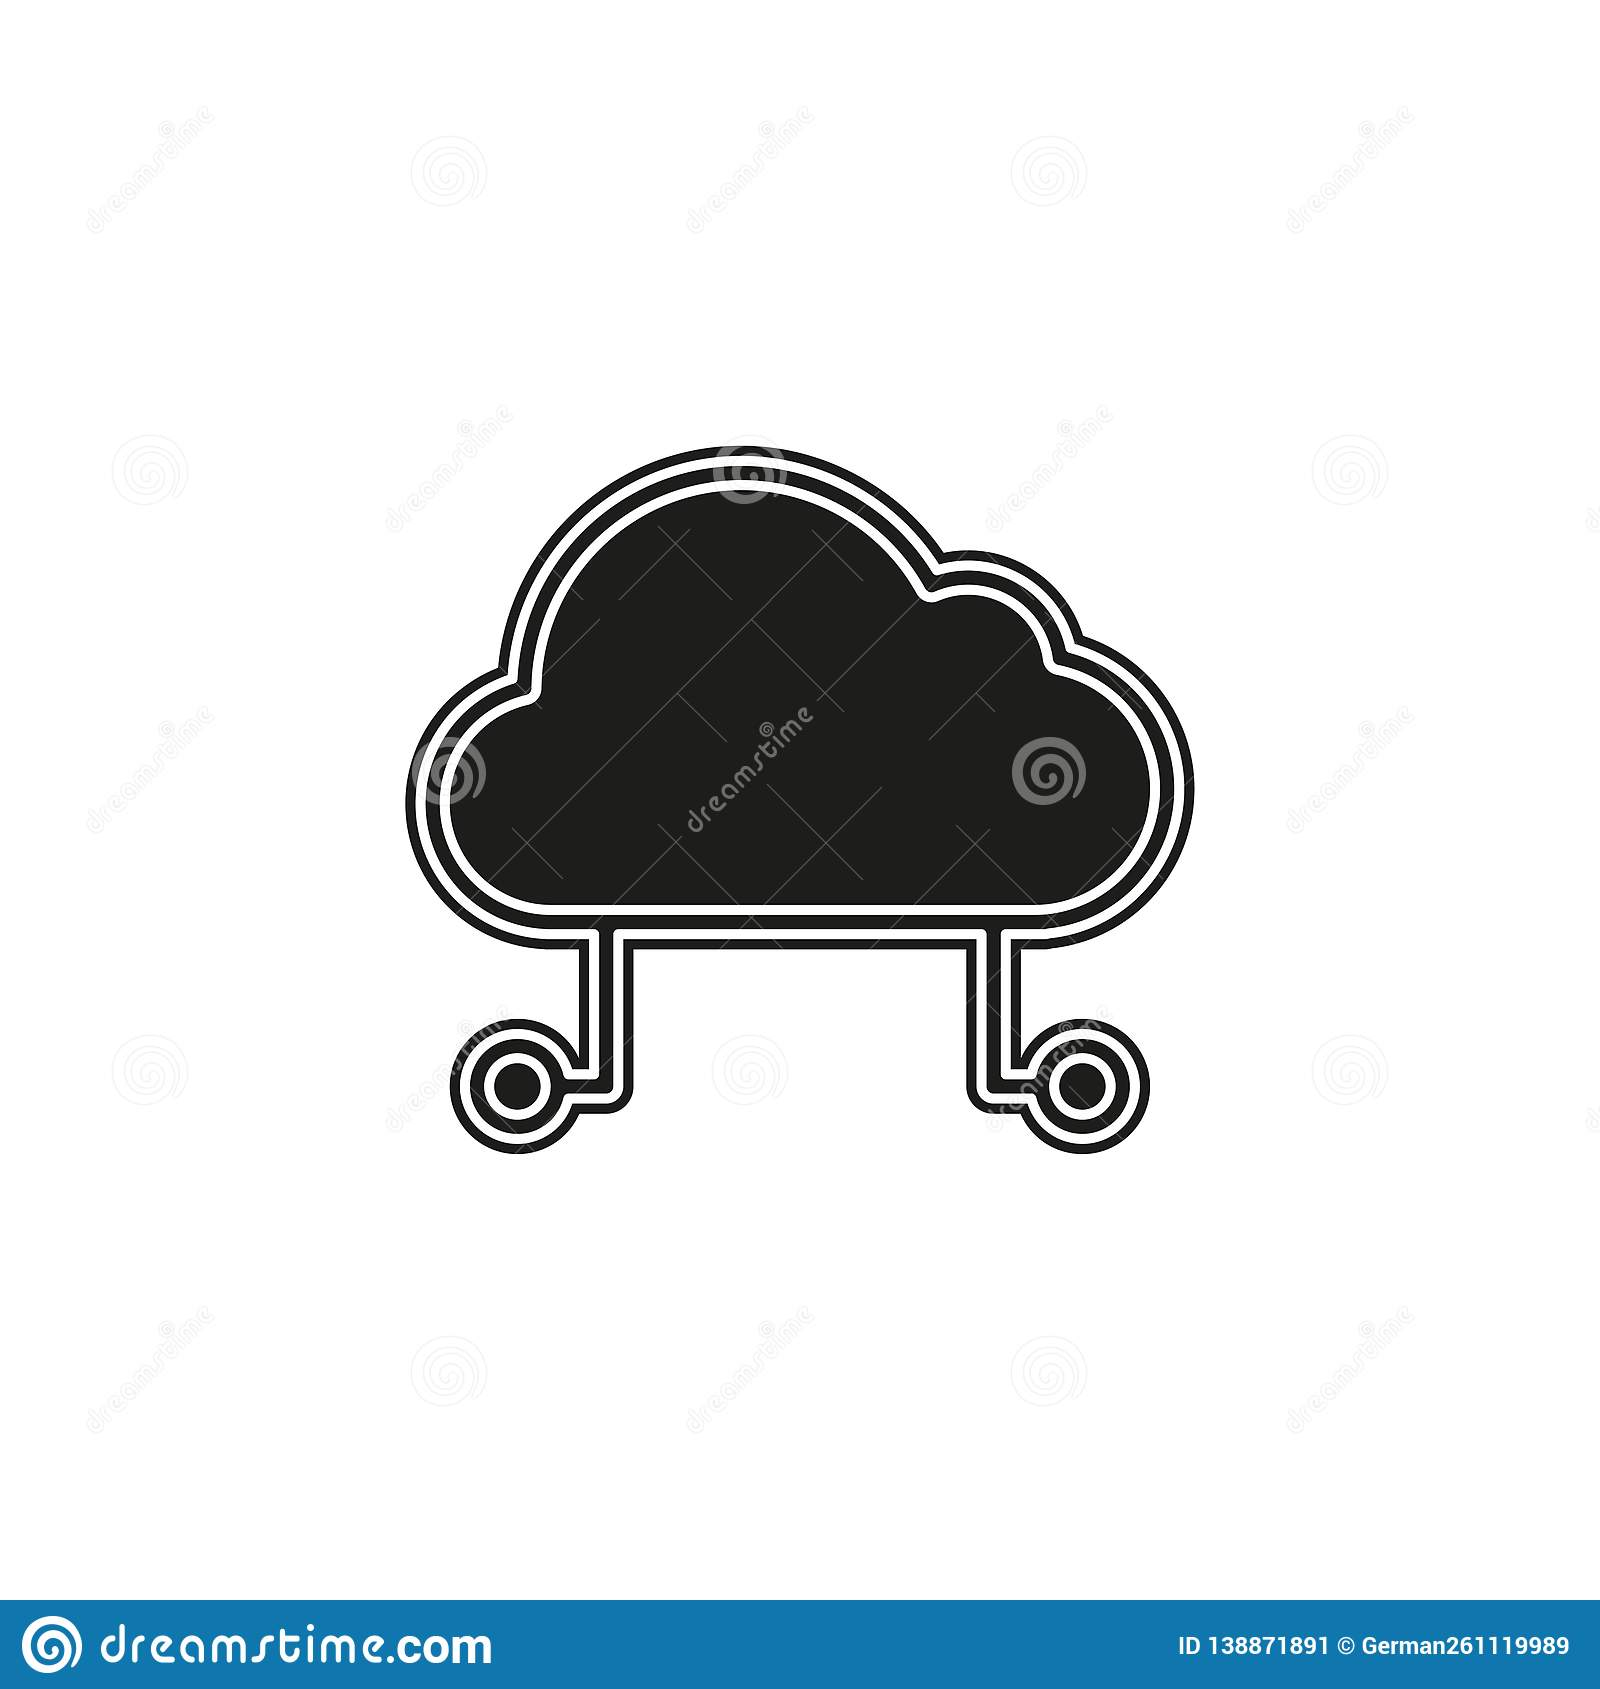 hosting cloud icon, cloud computing technology